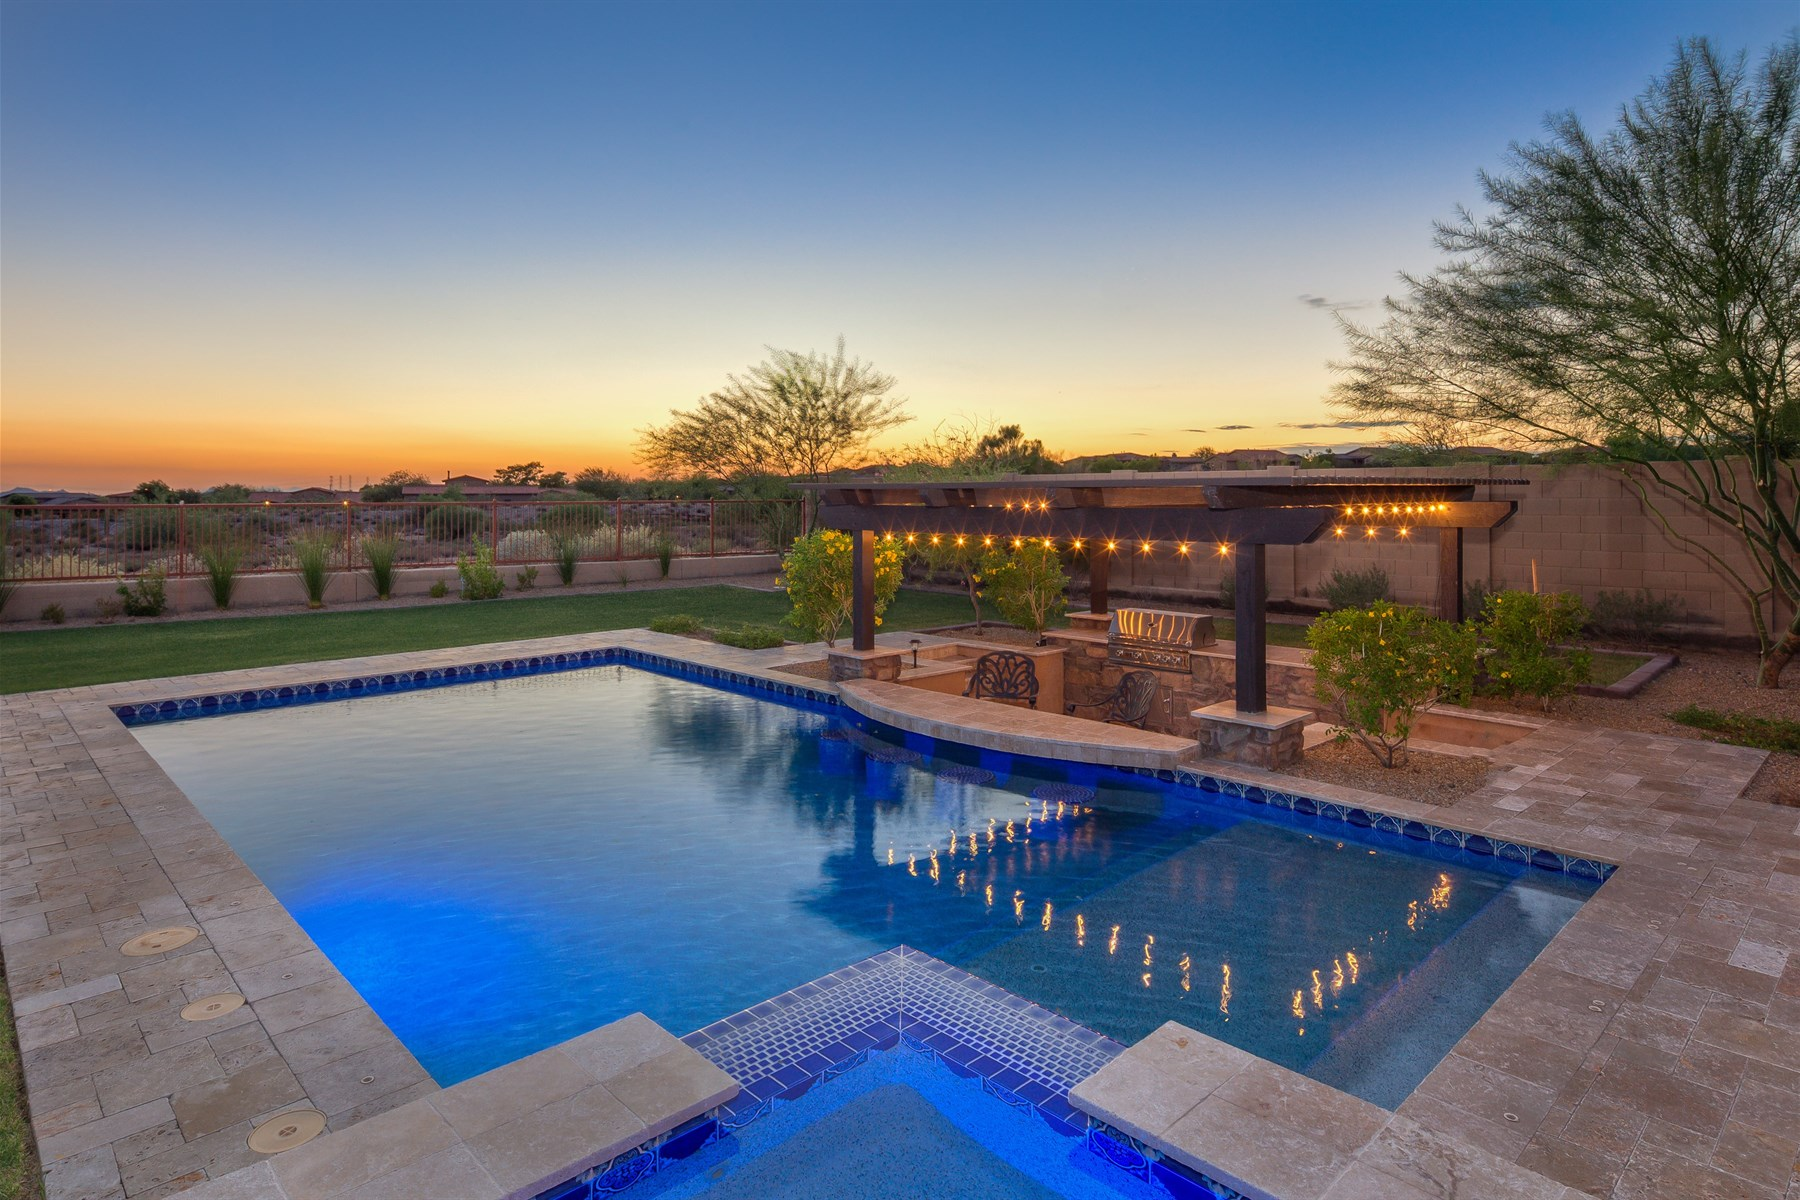 Moradia para Venda às Beautiful newer single-story home in the guard-gated community of Windgate Ranch 18294 N 96th Way Scottsdale, Arizona, 85255 Estados Unidos